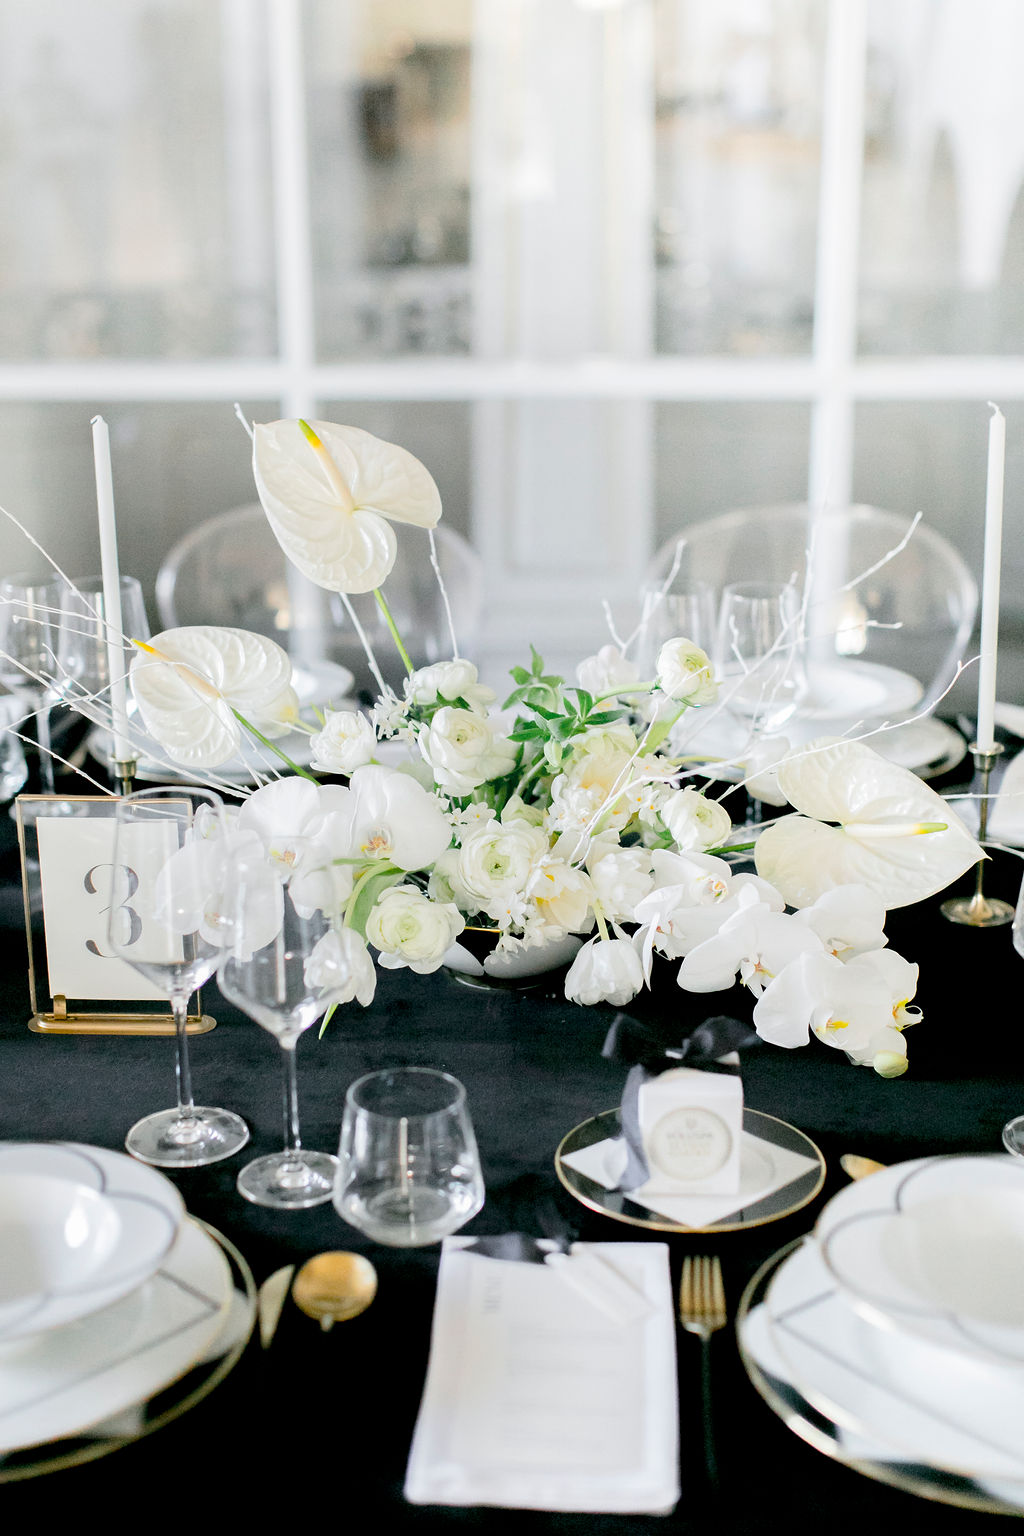 kloster-woeltingerode-black-white-wedding-table-decoration-1